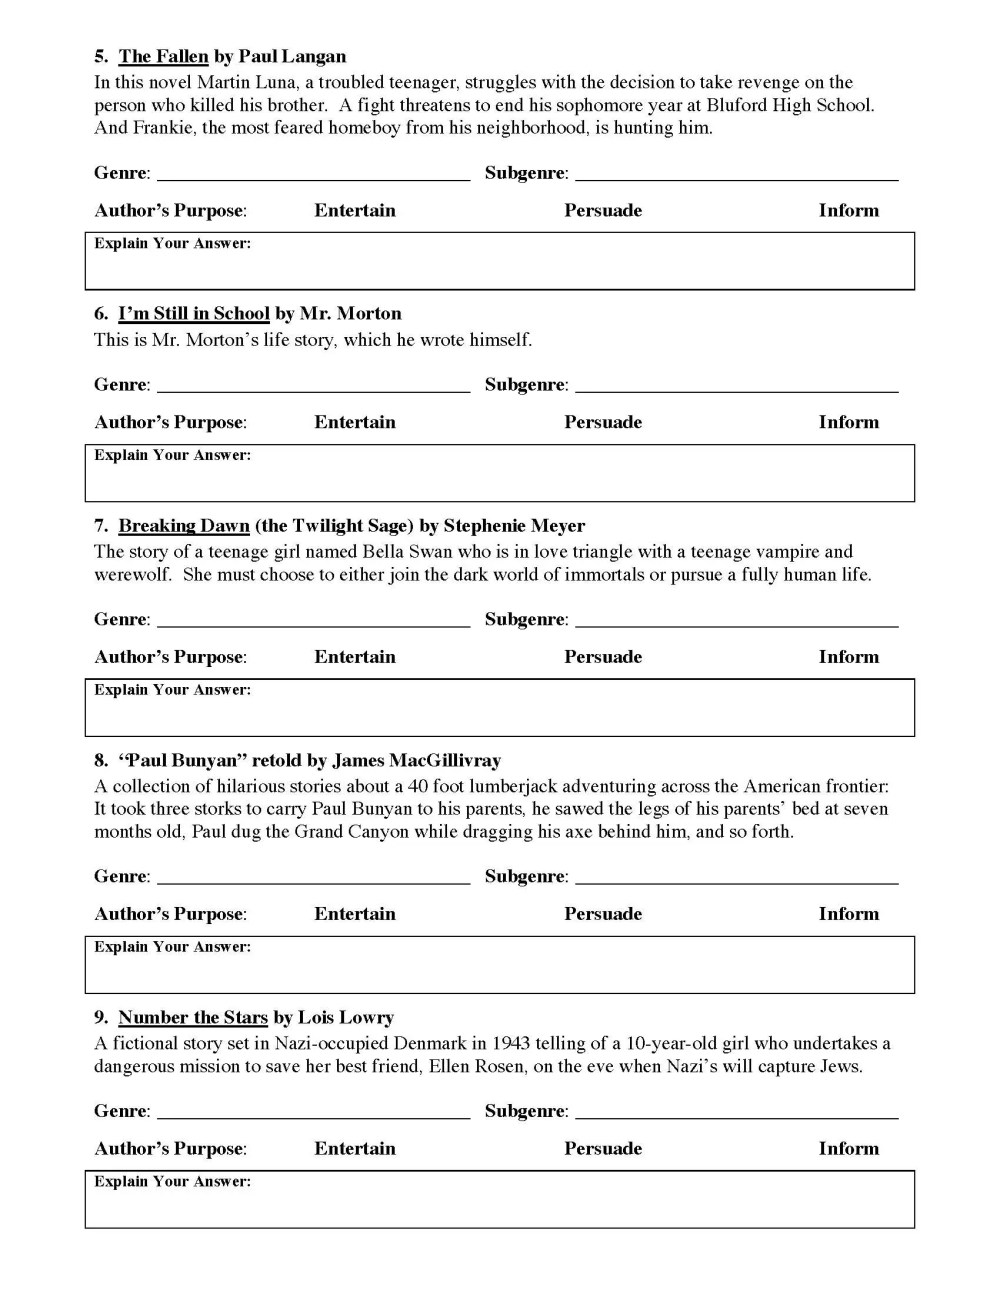 medium resolution of Genre and Author's Purpose Worksheet 1   Preview